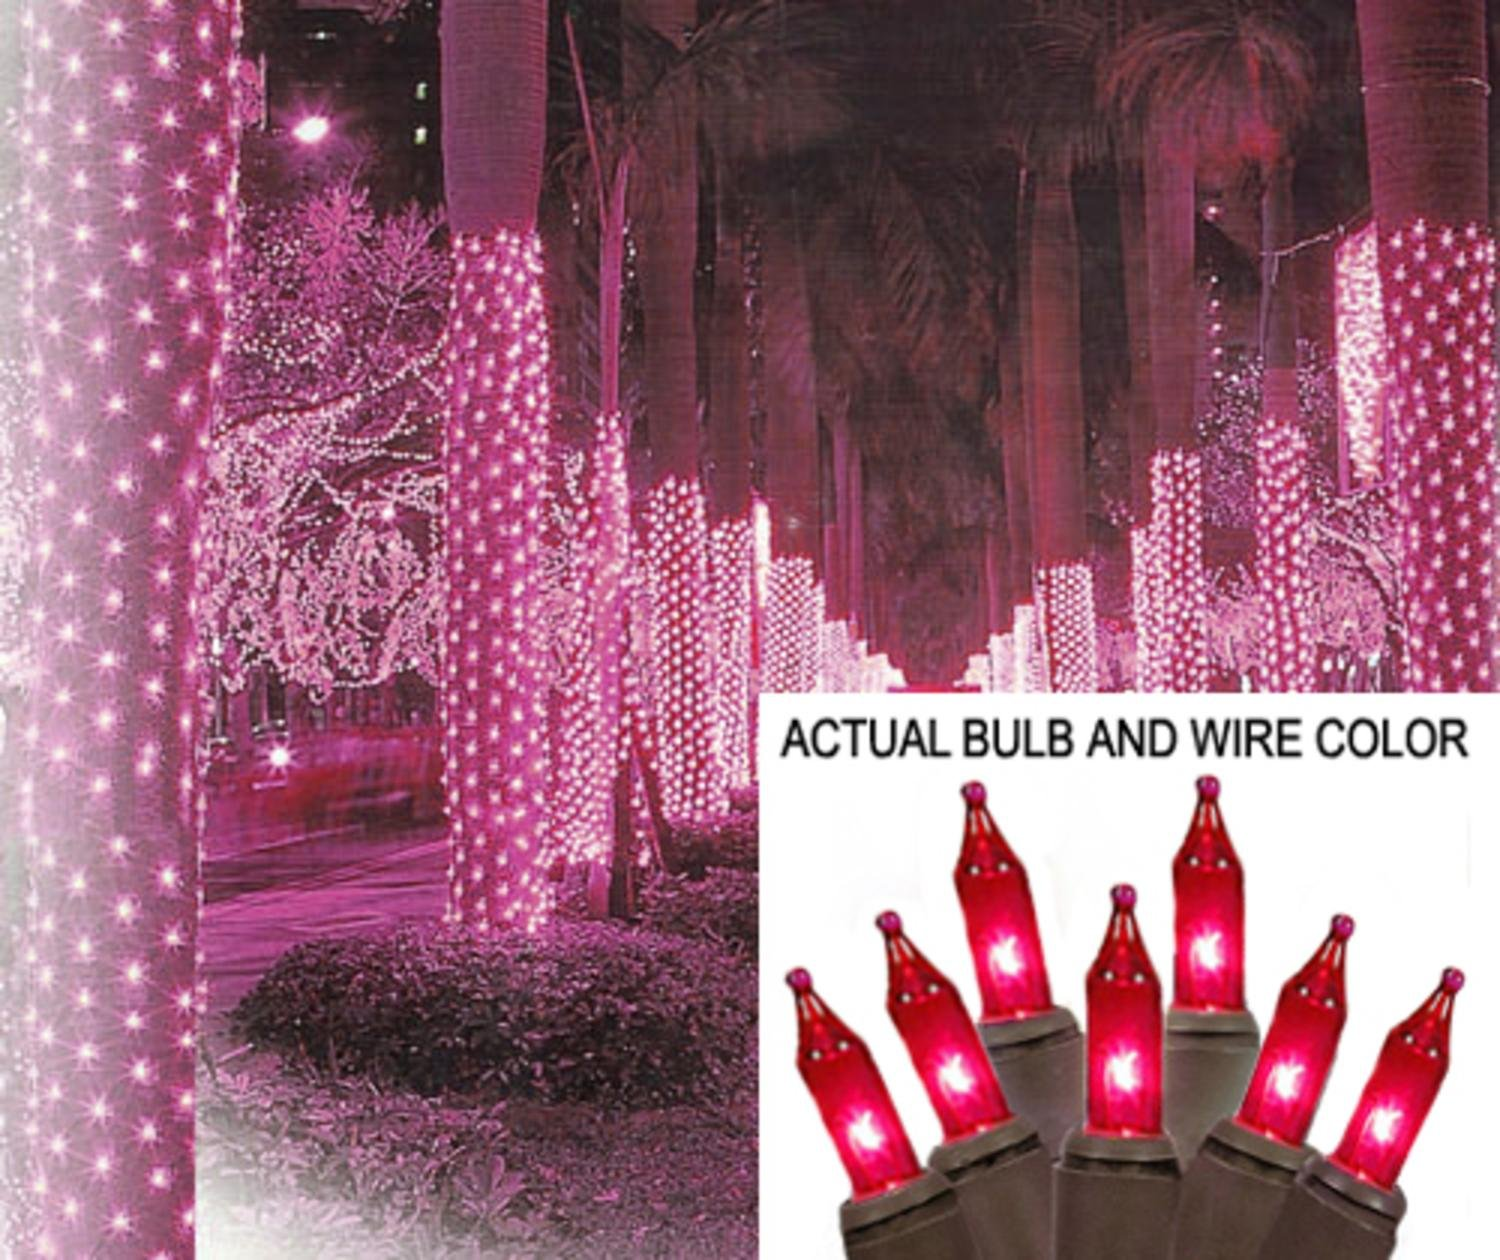 Sienna 2' x 8' Pink Mini Christmas Net Style Tree Trunk Wrap Lights - Brown Wire